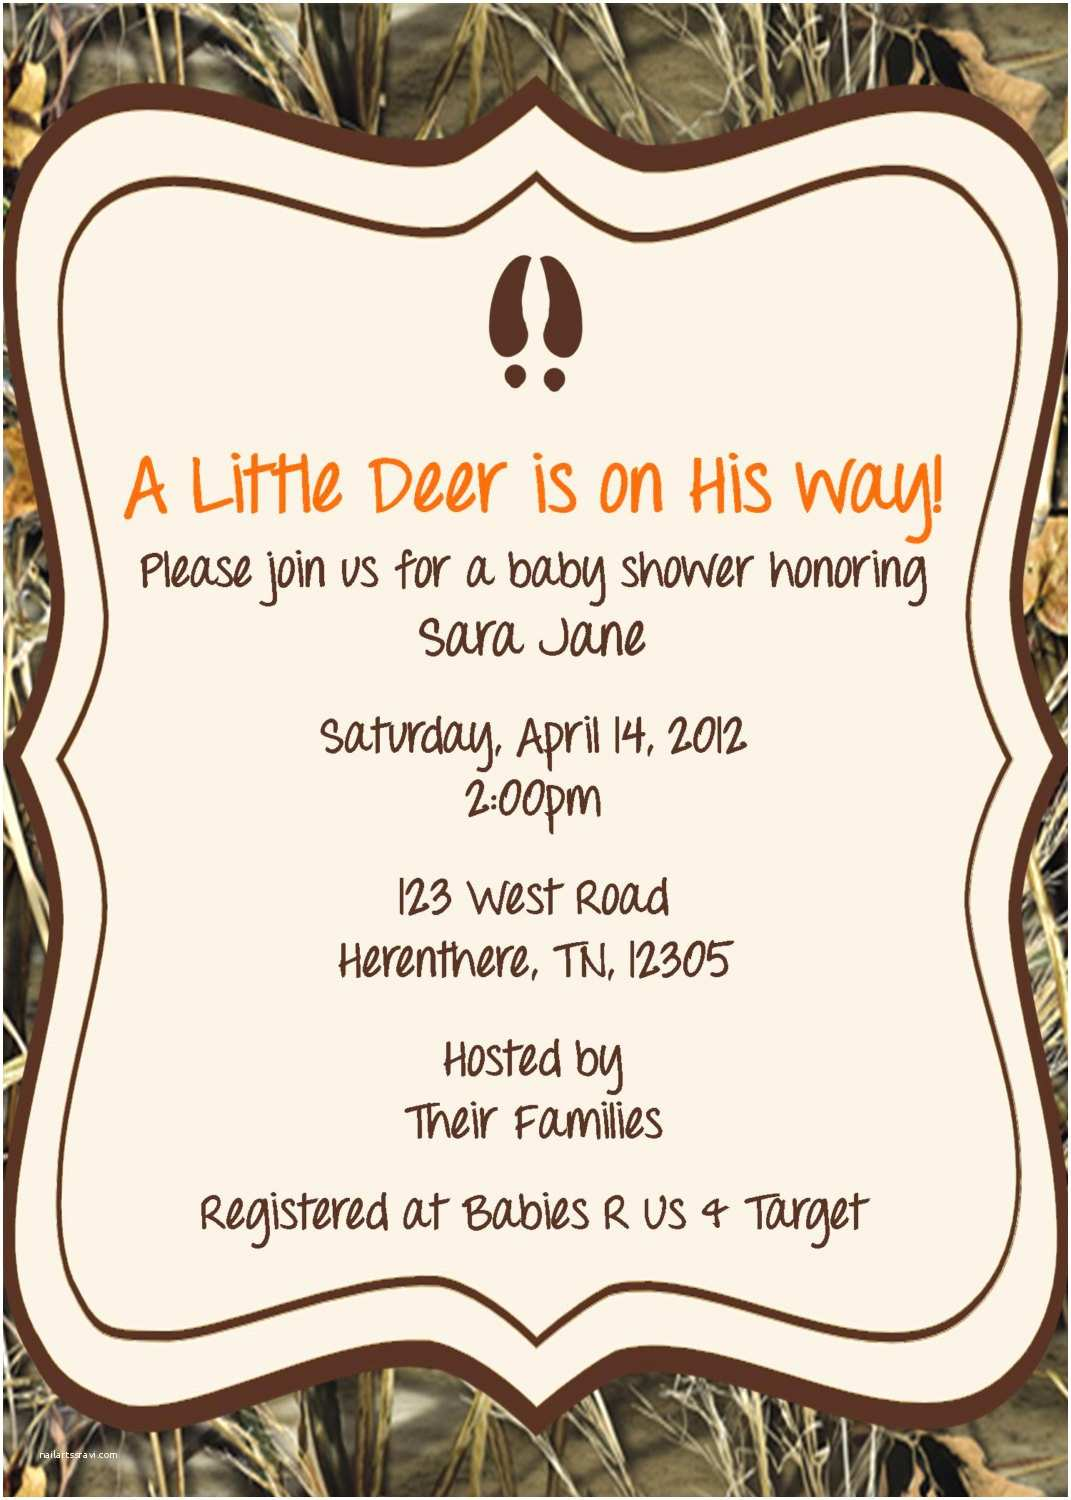 Baby  Shower Invitation Wording Baby Shower Invitation Wording For A